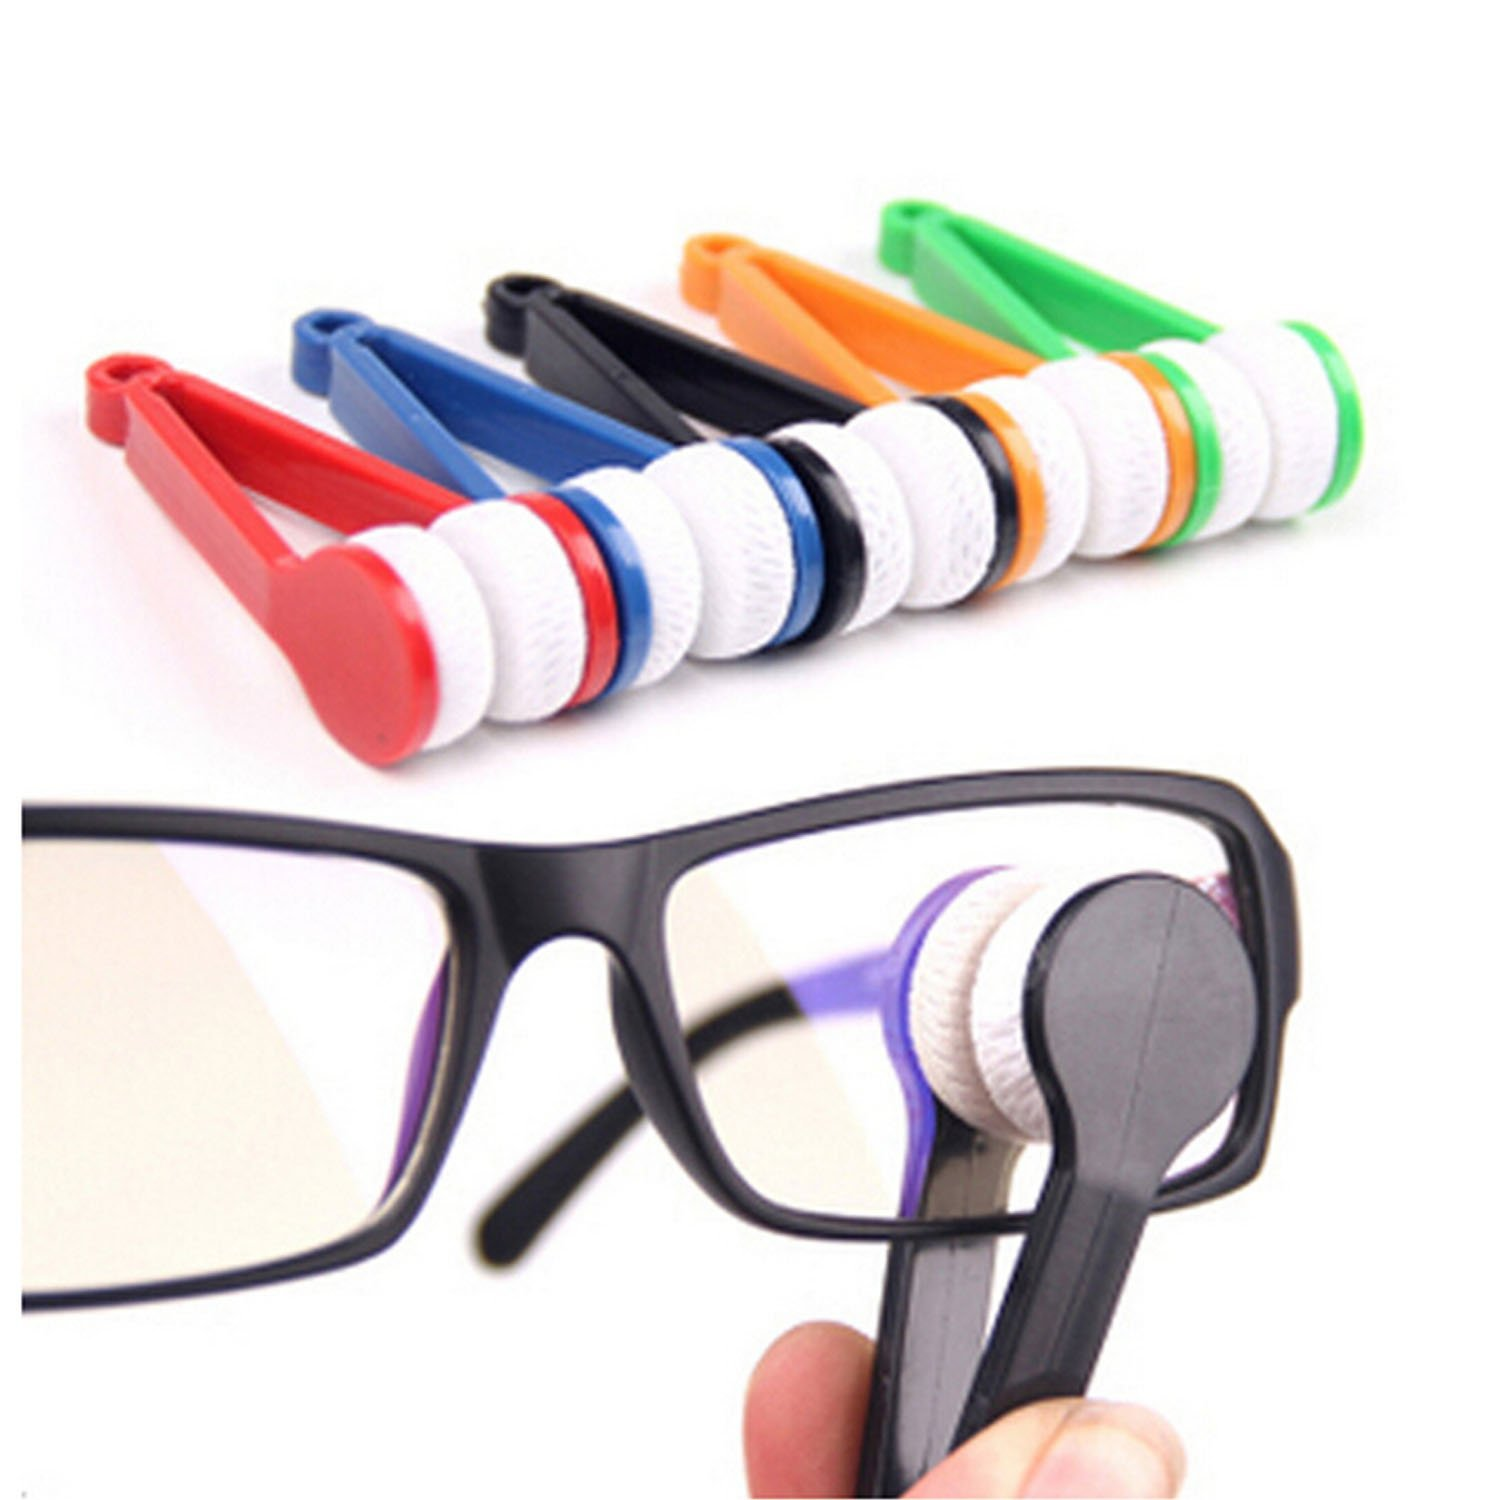 5 pcs Mini Microfibre Glasses Cleaner Microfibre Spectacles Sunglasses Eyeglass Cleaner Clean Wipe Tools Dropship